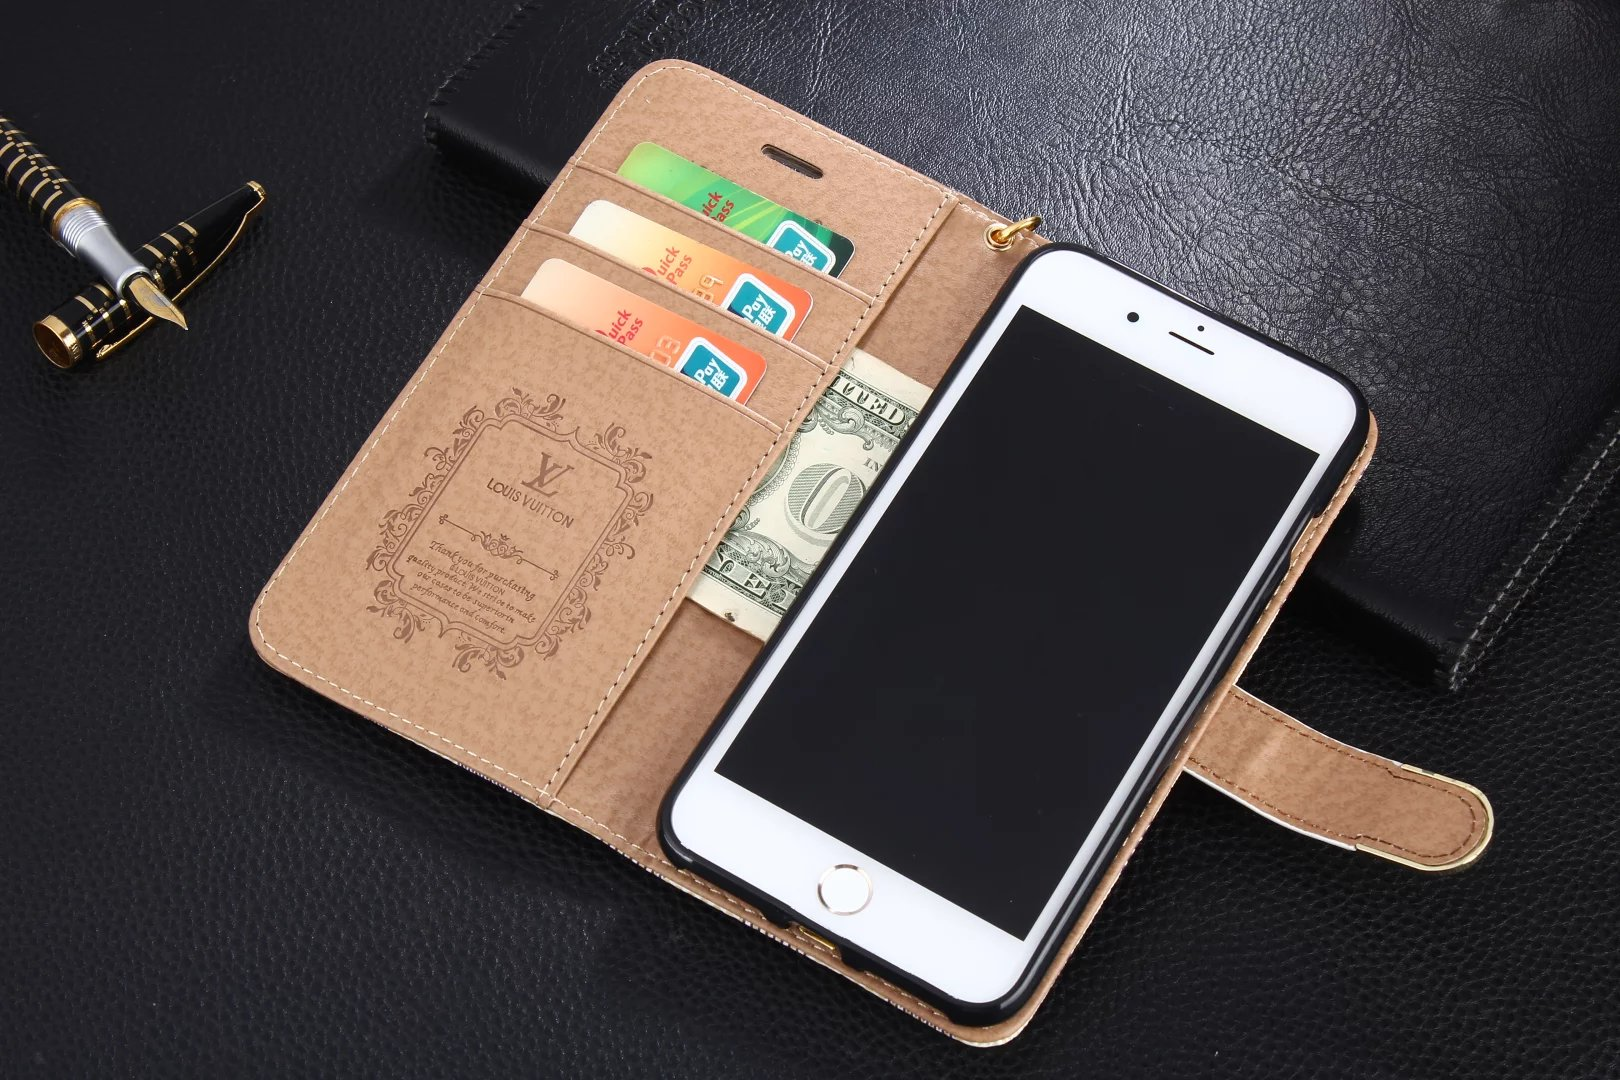 iphone 8 Plus designer covers iphone 8 Plus leather cover Louis Vuitton iphone 8 Plus case iphone 8 Plus wallet case for women best case iphone 8 Plus mobile phone case covers best iPhone 8 Plus case brands case iphone iPhone 8 Plusa case